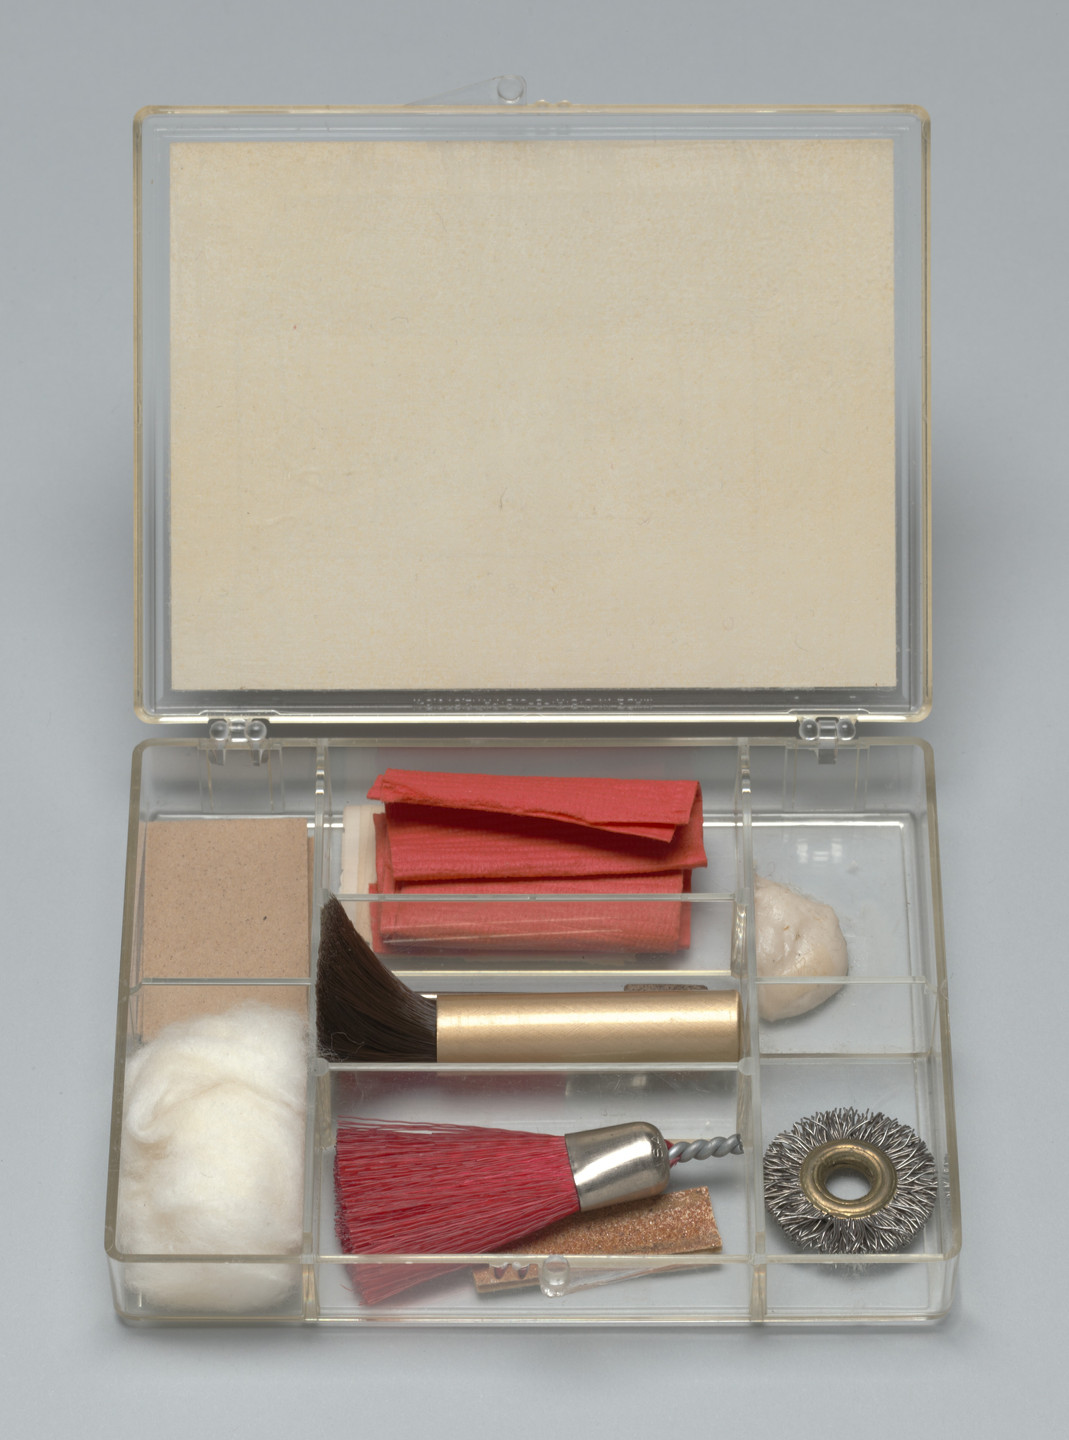 Ken Friedman. Cleanliness Flux Kit. 1969